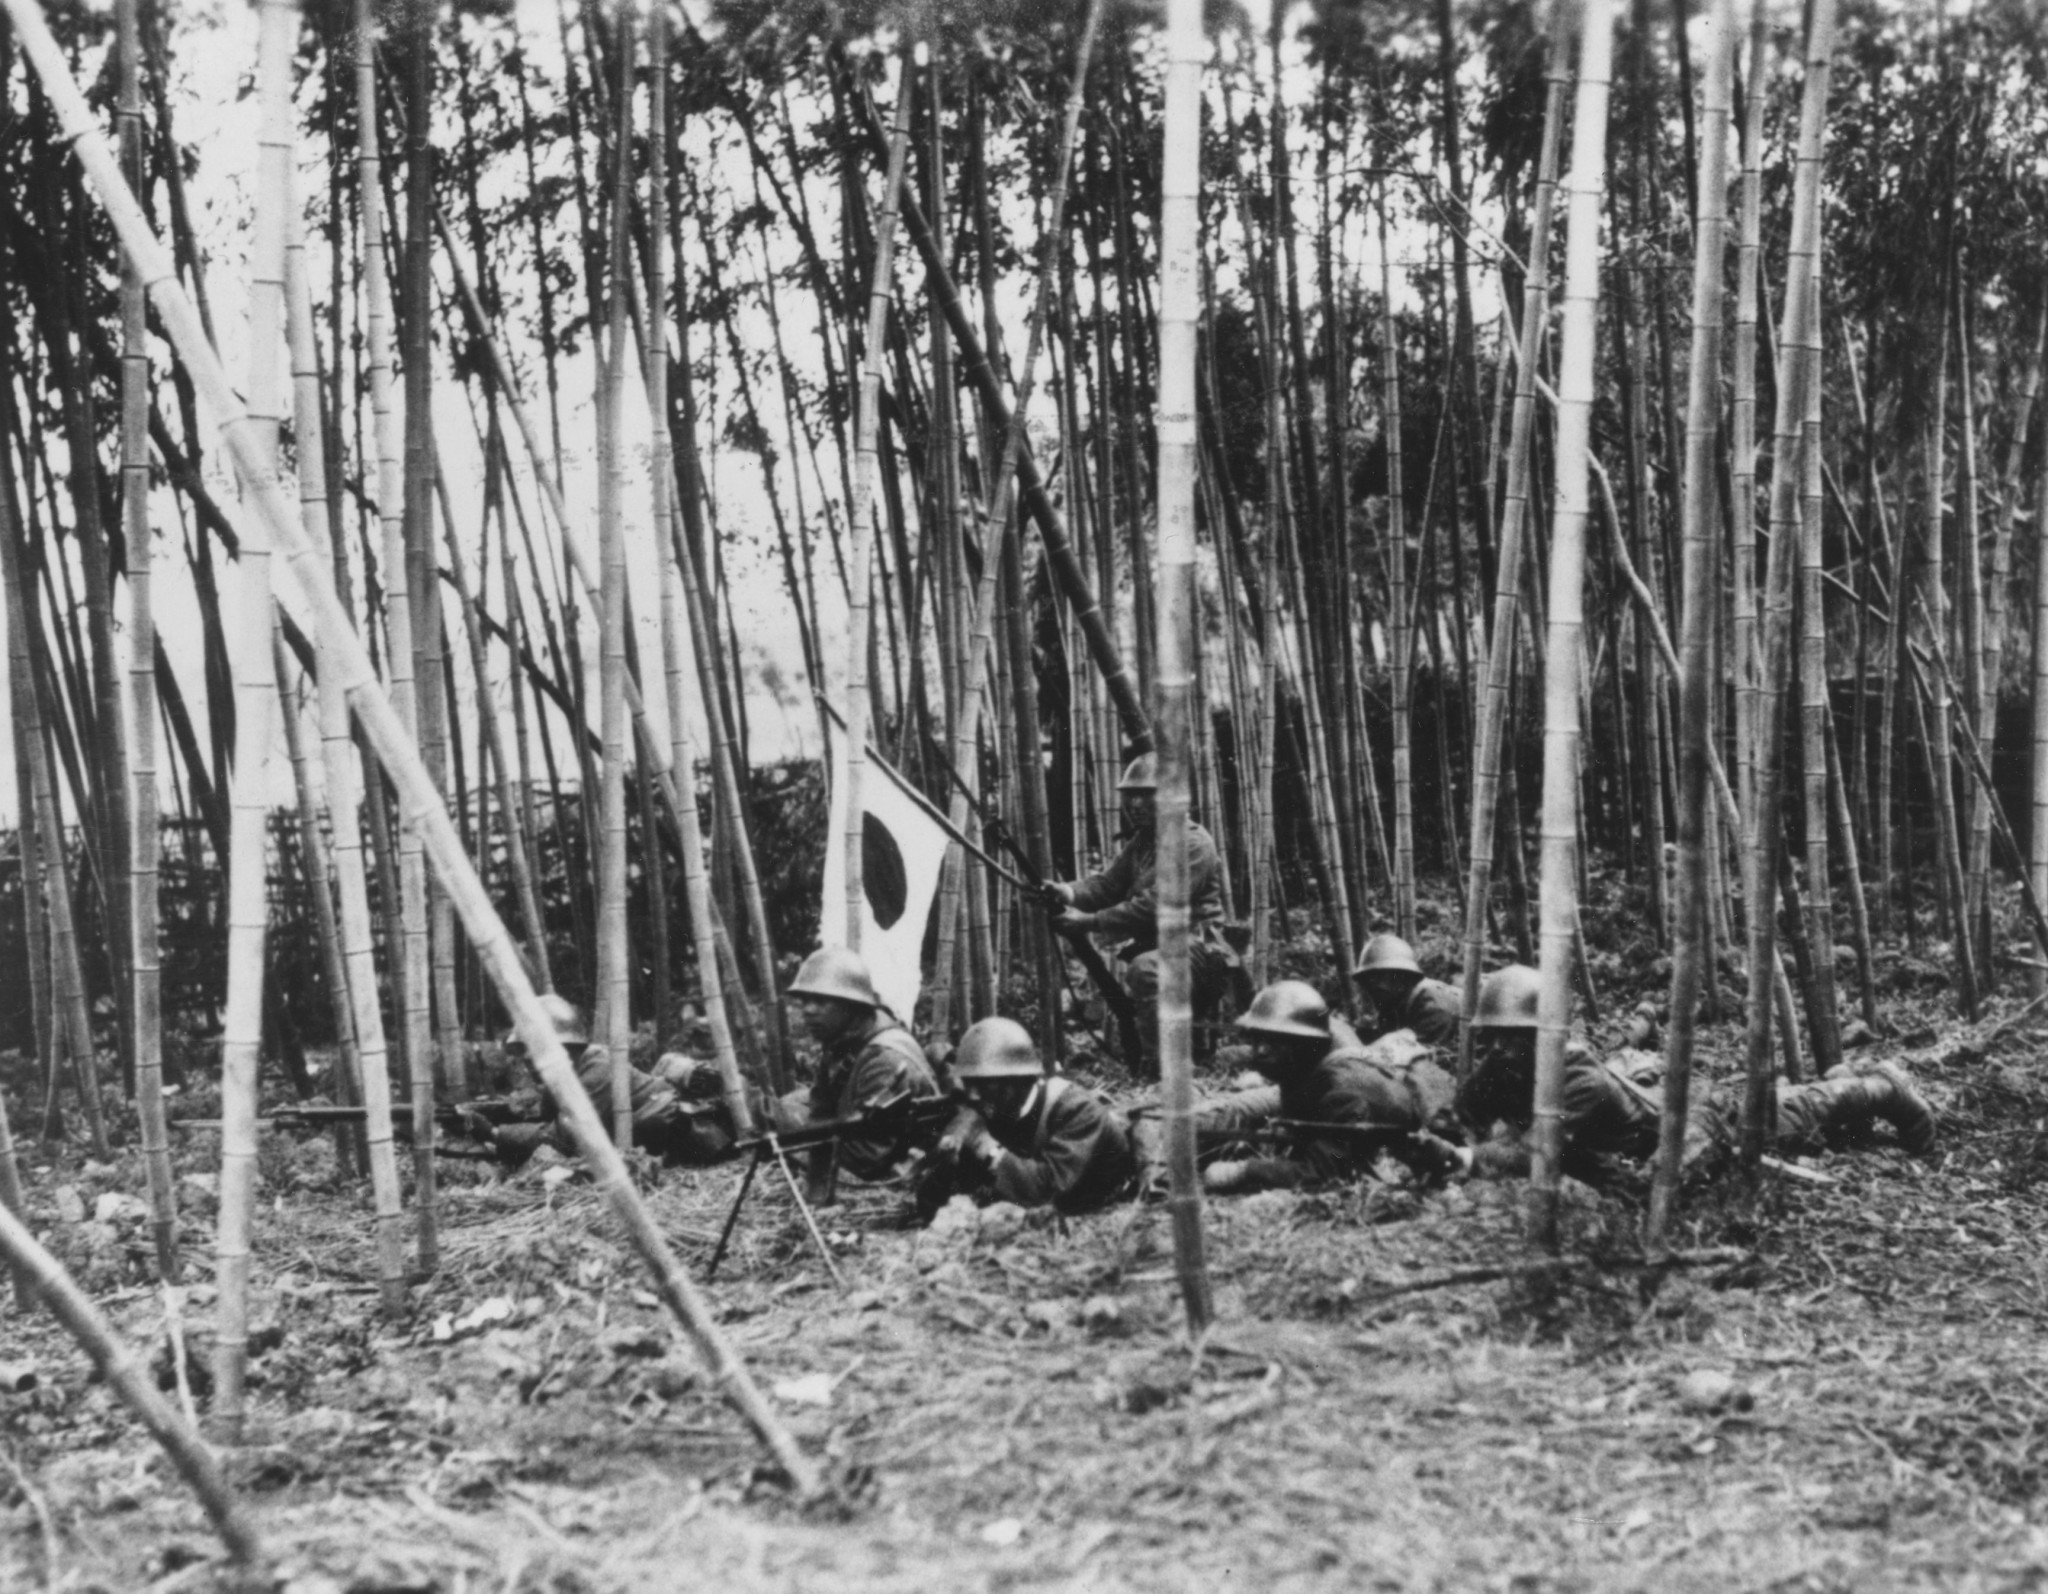 Japanese aggression in Manchuria undermined the country's bid to host the Games ©Getty Images